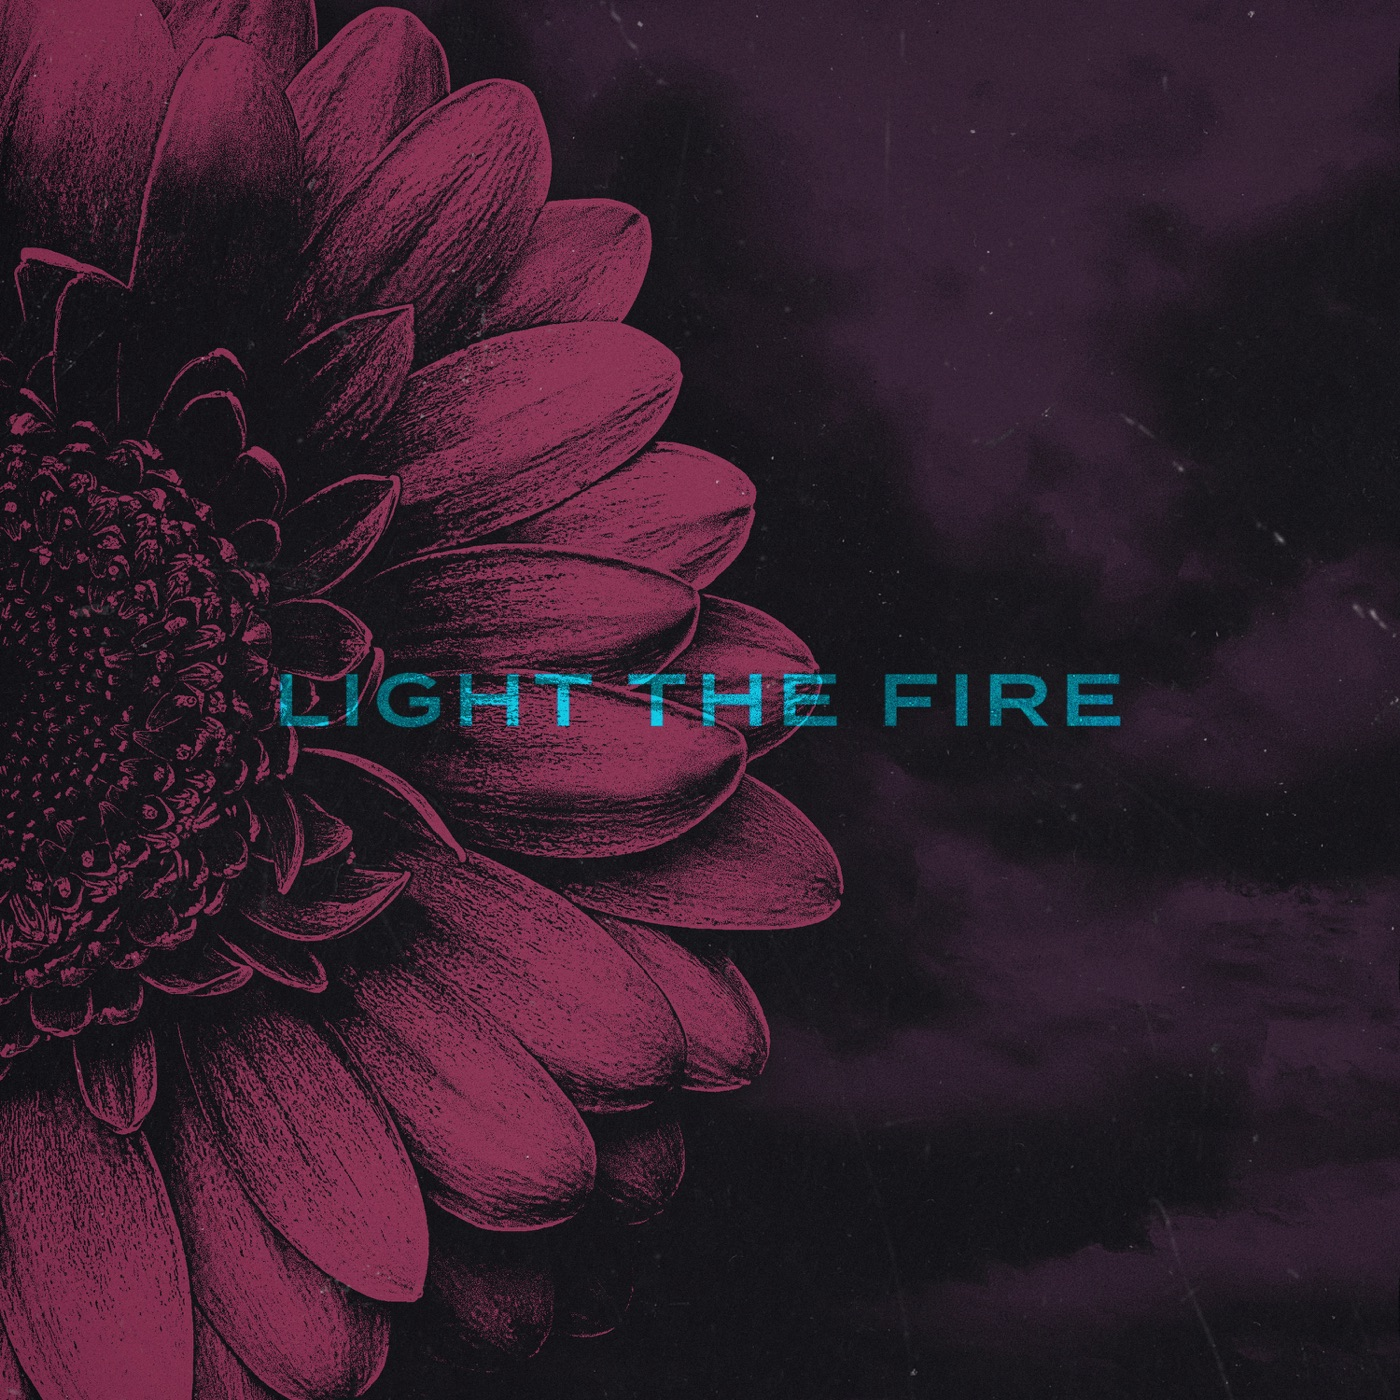 Secret Eyes - Light the Fire [single] (2019)